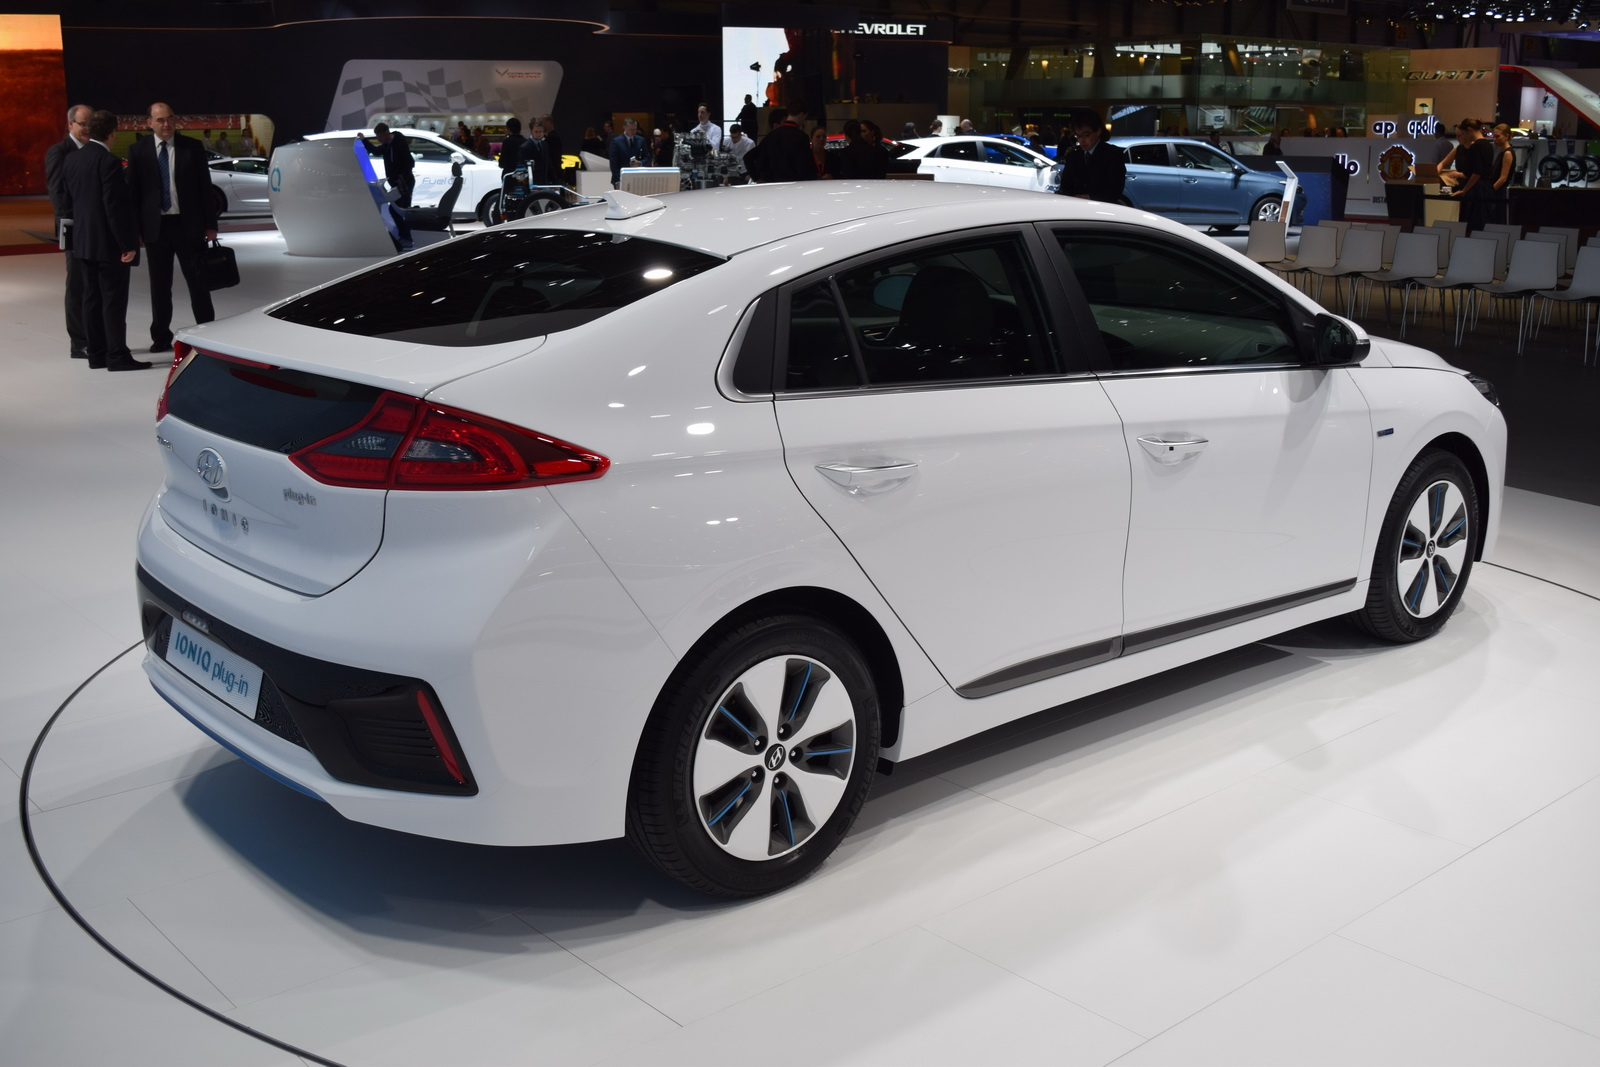 What Do You Think About Electric Cars